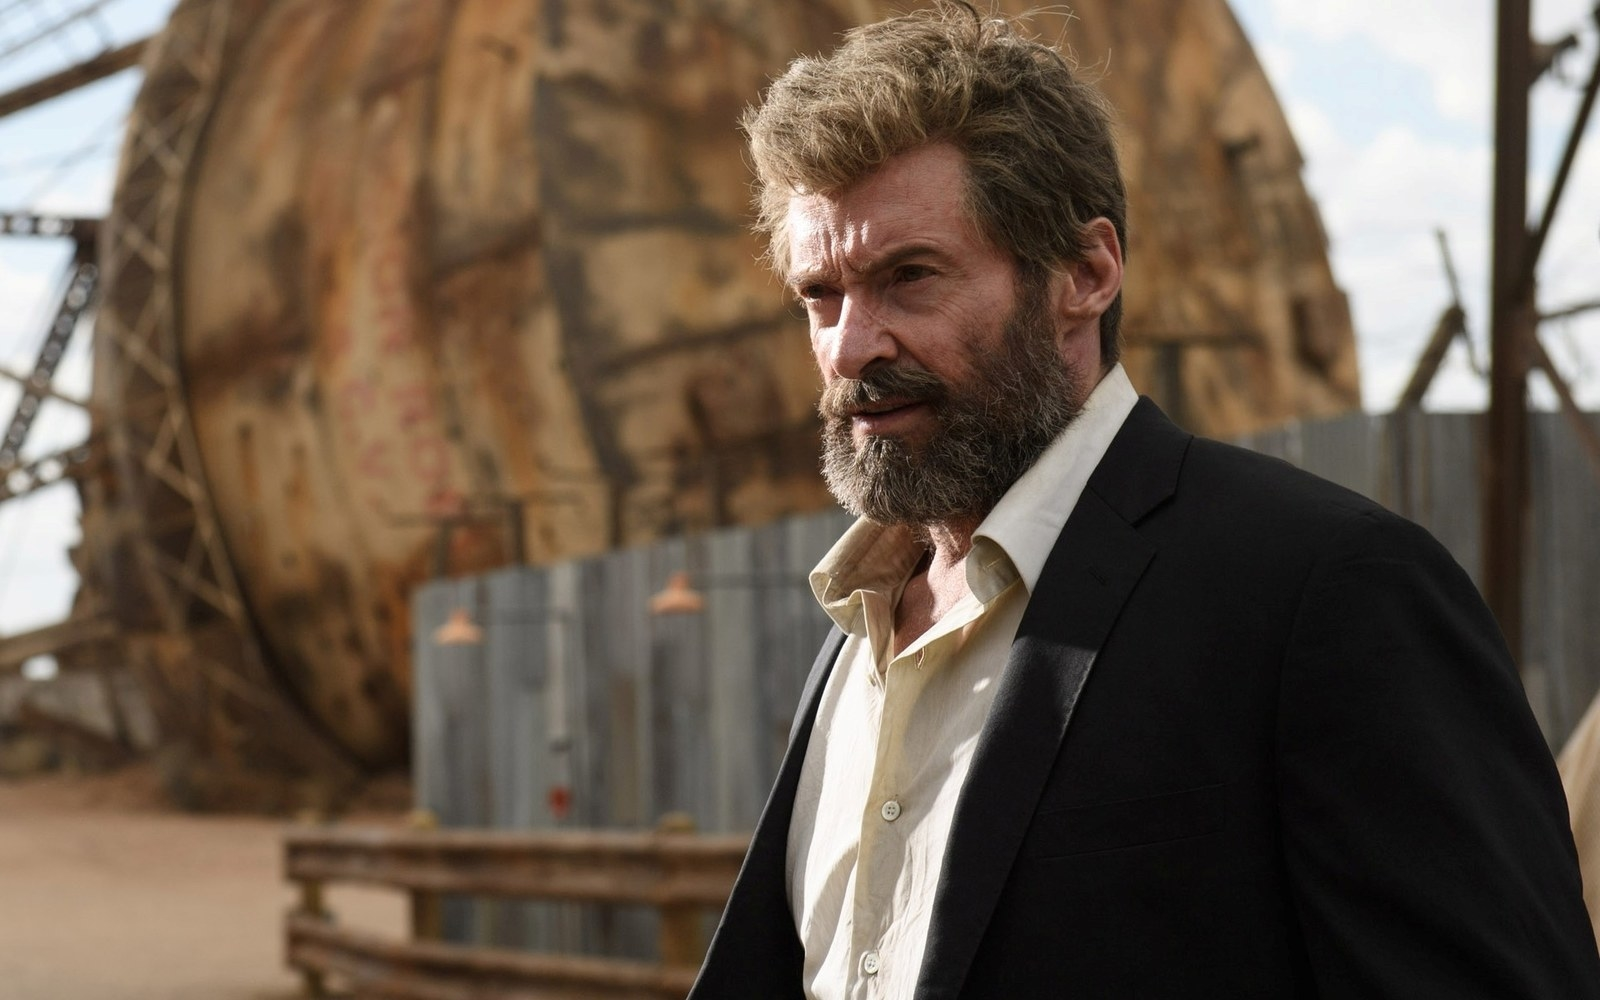 Why it's in third place: Hugh Jackman's swan song as Wolverine, the character he's played for 17 years, is finally the standalone film the character deserves. First introduced in 2000's X-Men, Jackman's Wolverine has since starred in two character origin films — 2009's disappointing X-Men Origins: Wolverine and 2013's much-improved The Wolverine (also directed by Logan director and writer James Mangold) — but Logan finally, and completely, humanizes the hero.As his superpowers wane in the year 2029, fate finds Logan's previous role as badass X-Man giving way to the more decidedly human roles of caretaker (to Patrick Stewart's aging Professor X) and mentor (to his biological daughter and similarly gifted mutant, Laura, played by the ferociously talented Dafne Keen).Mangold leans into the gruesomeness of Logan's physically grounded powers, and because Logan can no longer instantly heal, the audience is forced to square with the bloody nature of superheroism that's often glazed over. It's not an easy movie to watch (the final scene will stay with you long after the credits roll), but it's the heartbreaking and memorable end both Logan and Jackman deserve.Worldwide box office earnings: $616 millionRotten Tomatoes rating: 93%